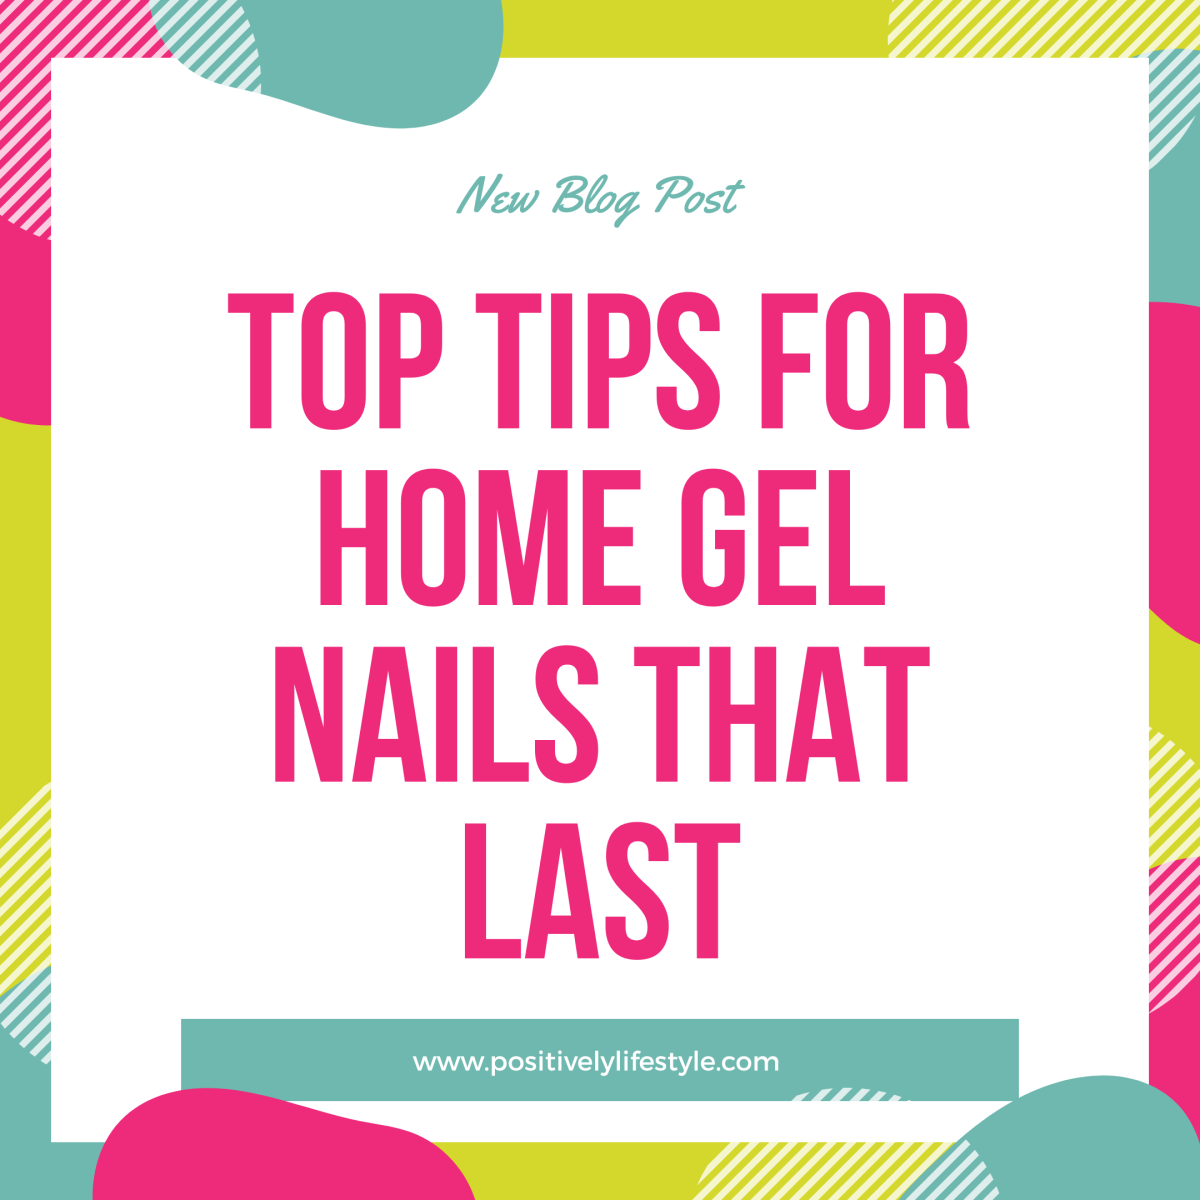 Top Tips For Home Gel Nails ThatLast